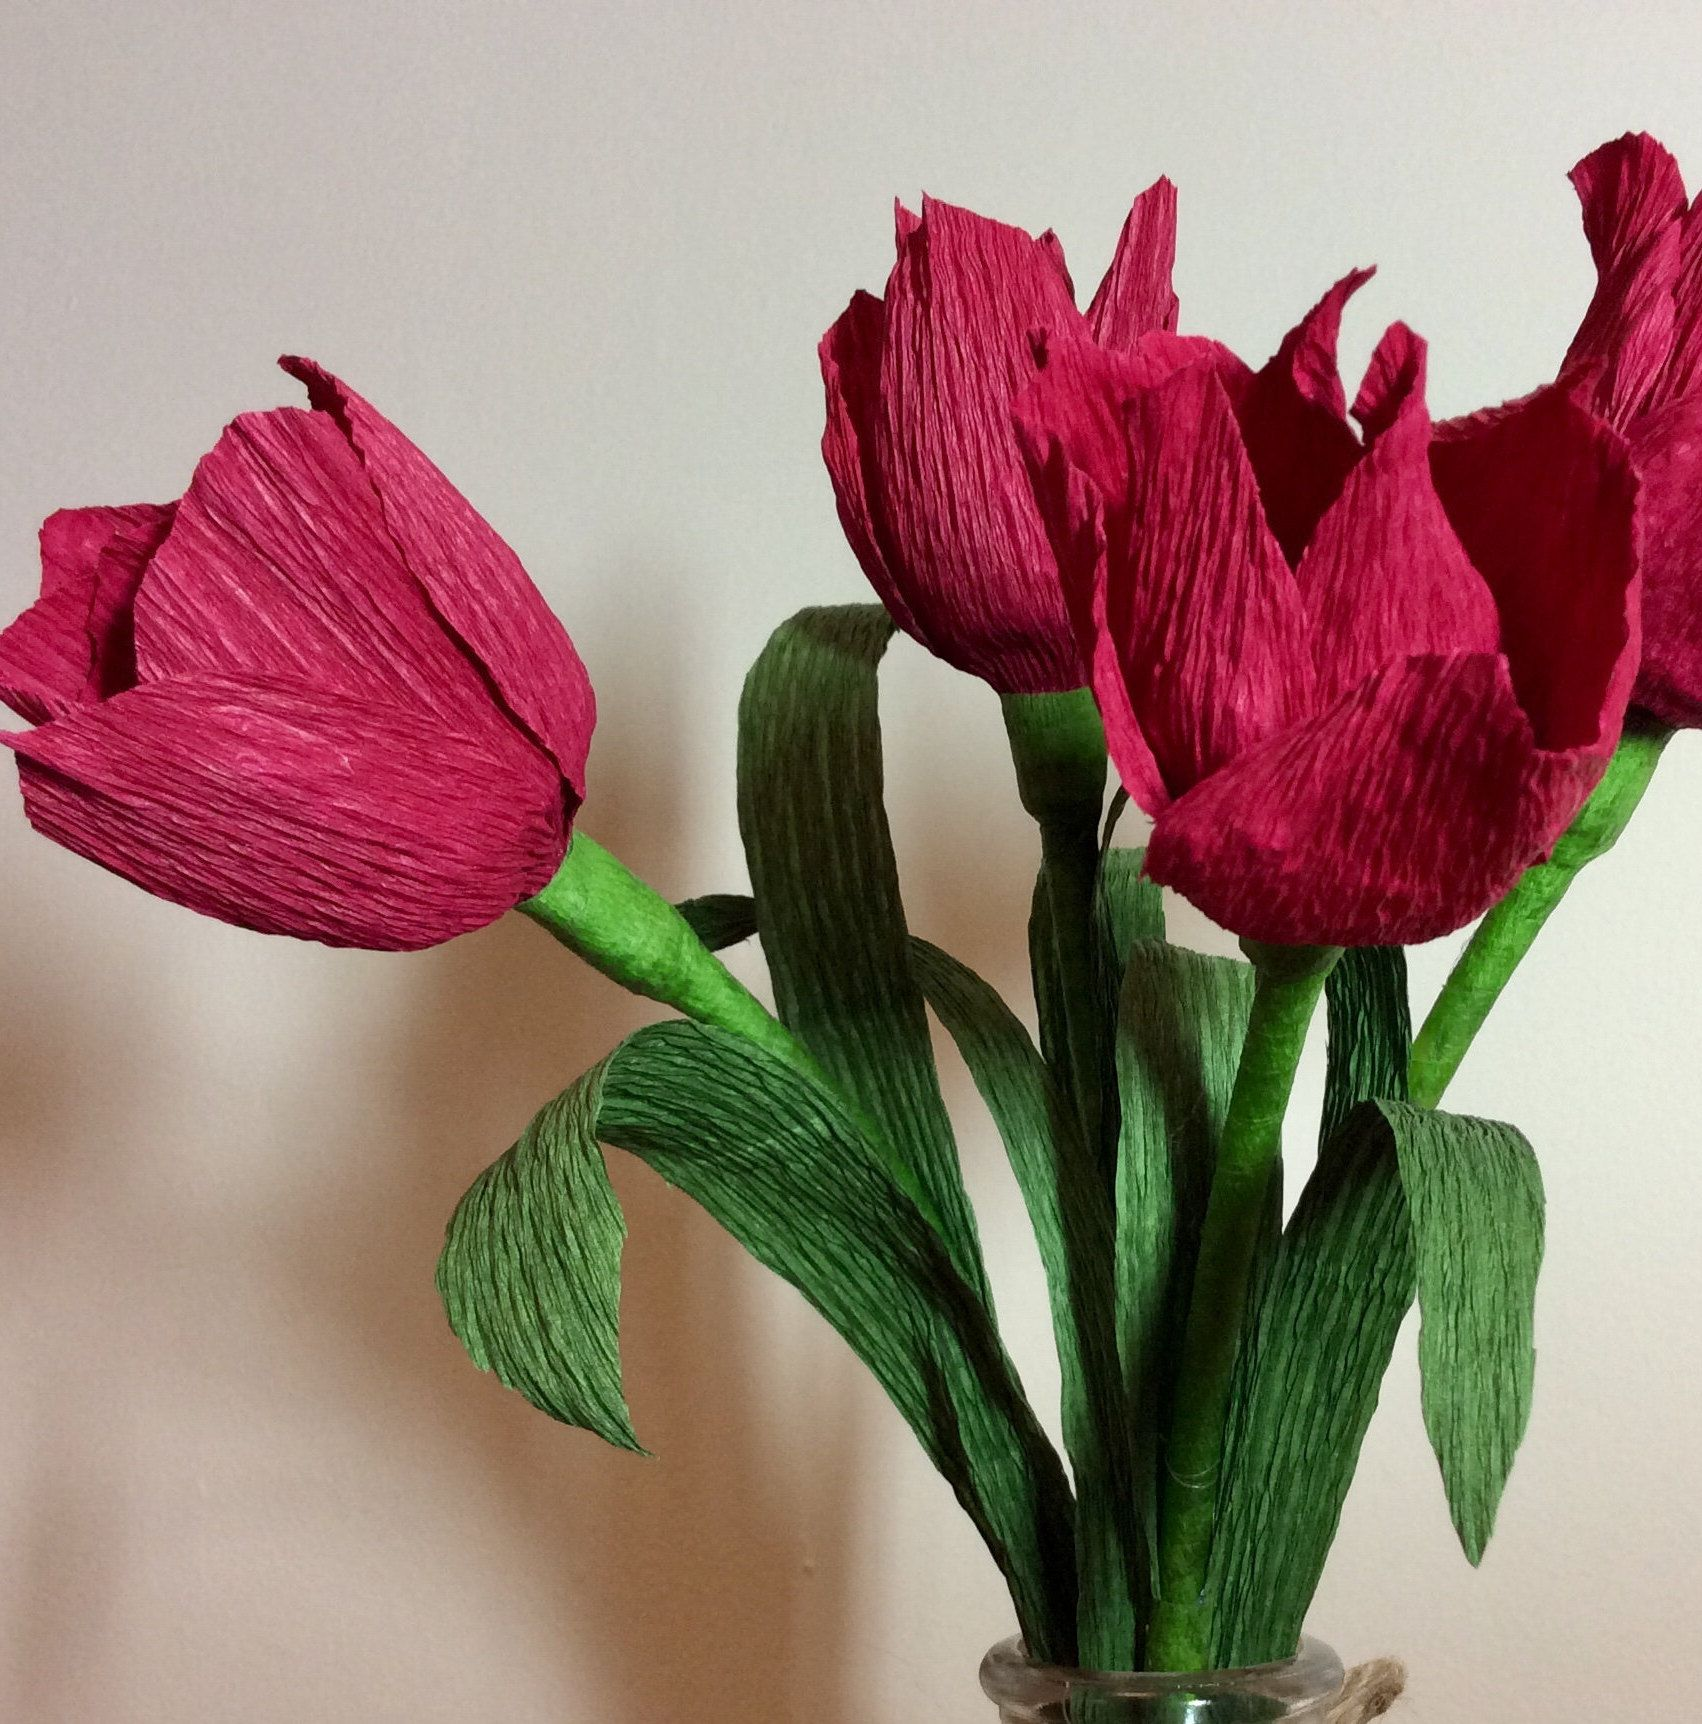 Paper Flowers Tulips Red Tulips Spring Wedding Flowers Red